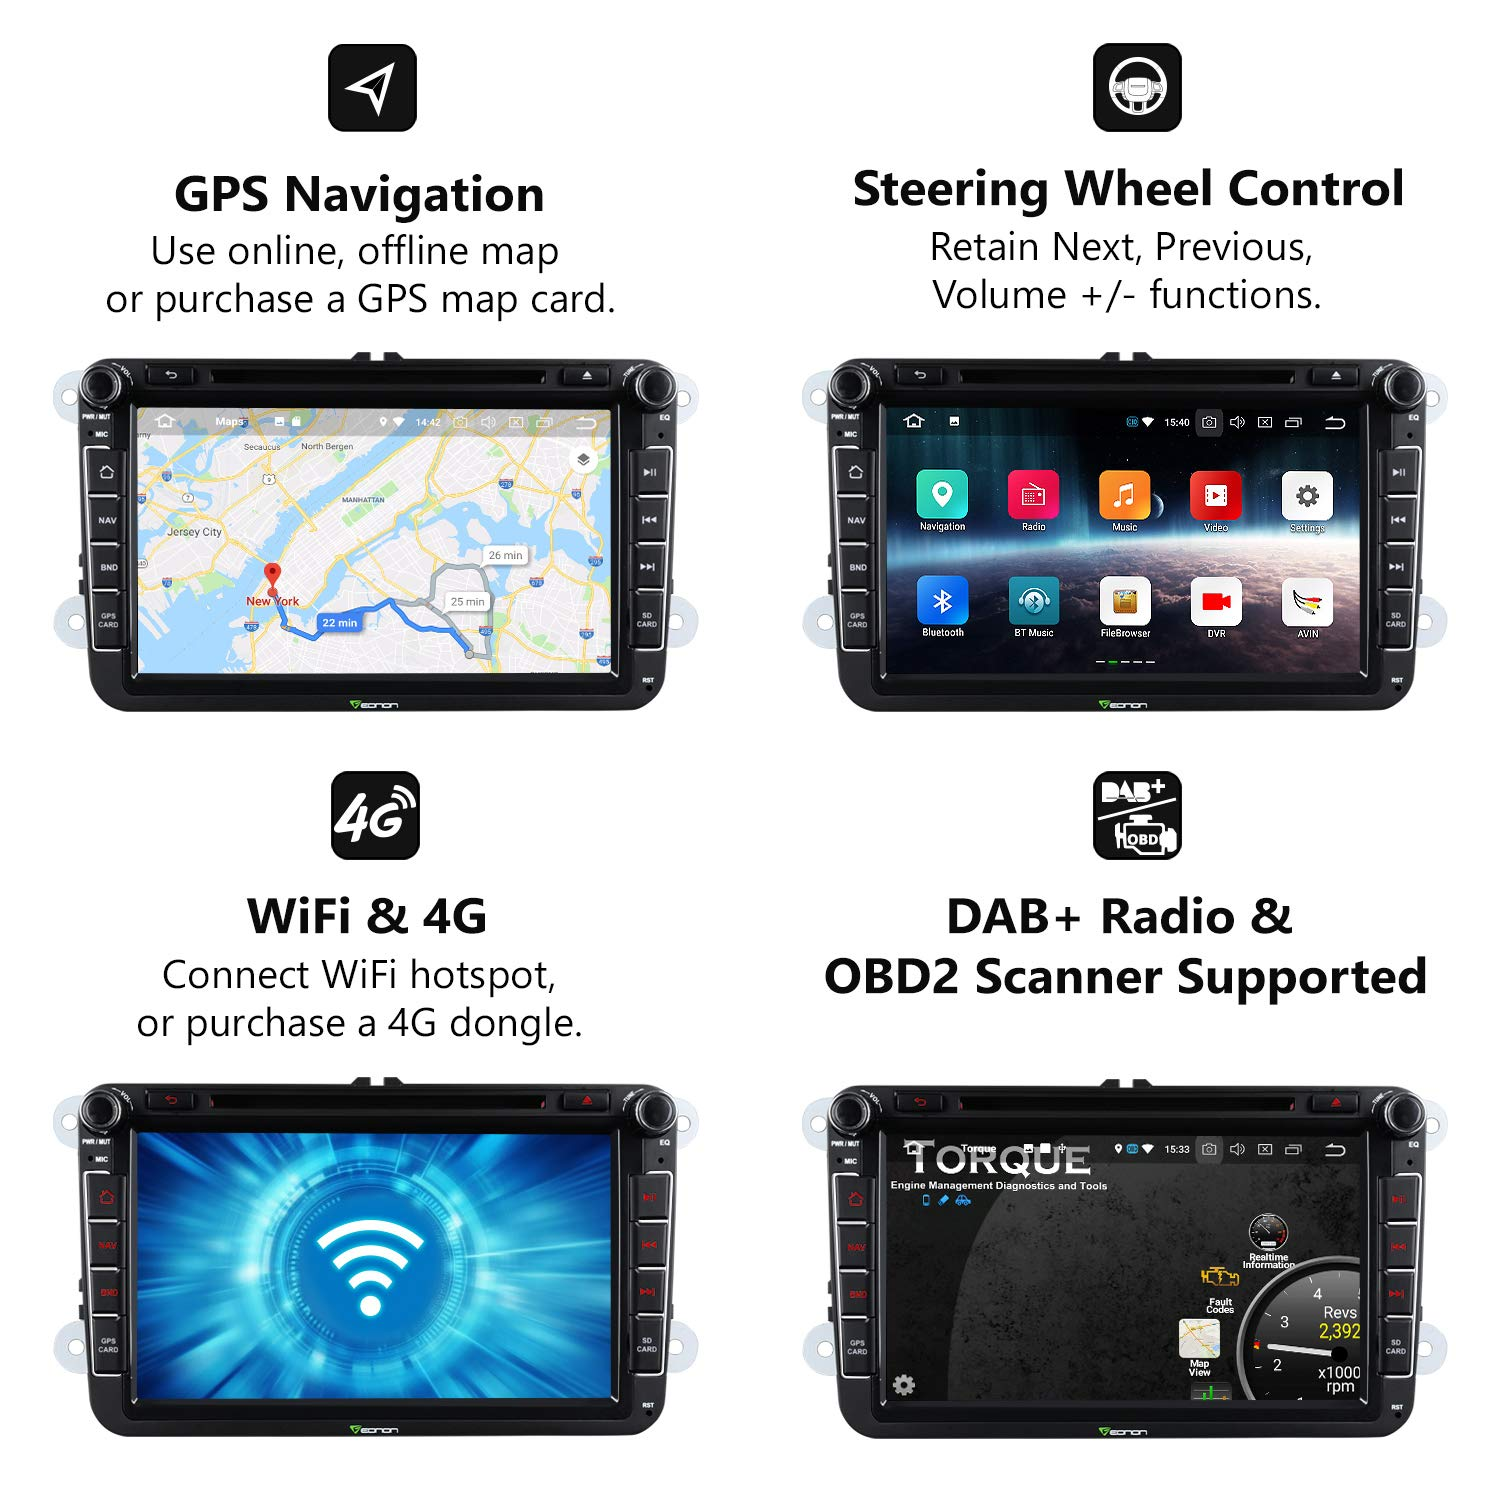 Double 2 Din Car Stereo,Eonon Dual Bluetooth Android 8.0 Car Head Unit, Applicable to Volkswagen/SEAT/Skoda 4GB RAM+32GB ROM Octa-Core 8 Inch with Bluetooth Split Screen,Fastboot-GA9153A by Eonon (Image #4)